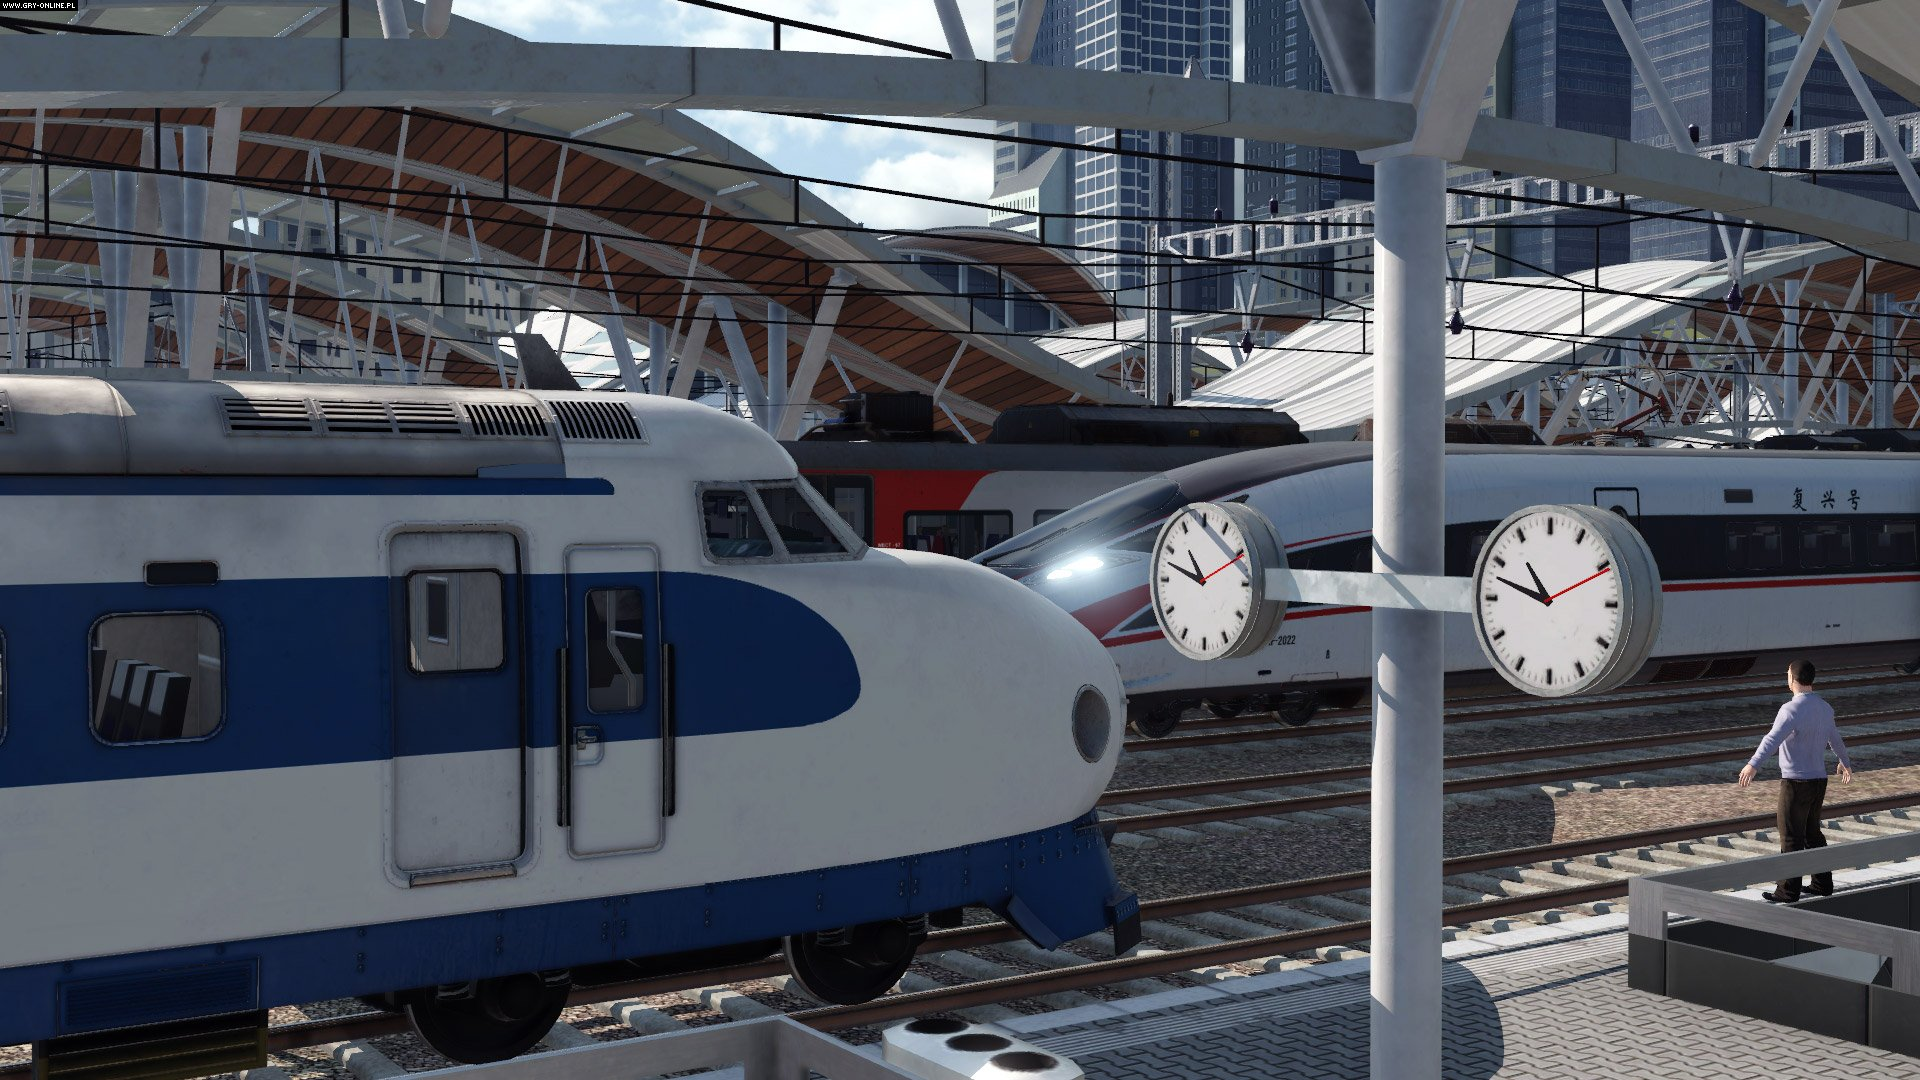 Transport Fever 2 PC Games Image 5/16, Urban Games, Good Shepherd Entertainment / Gambitious